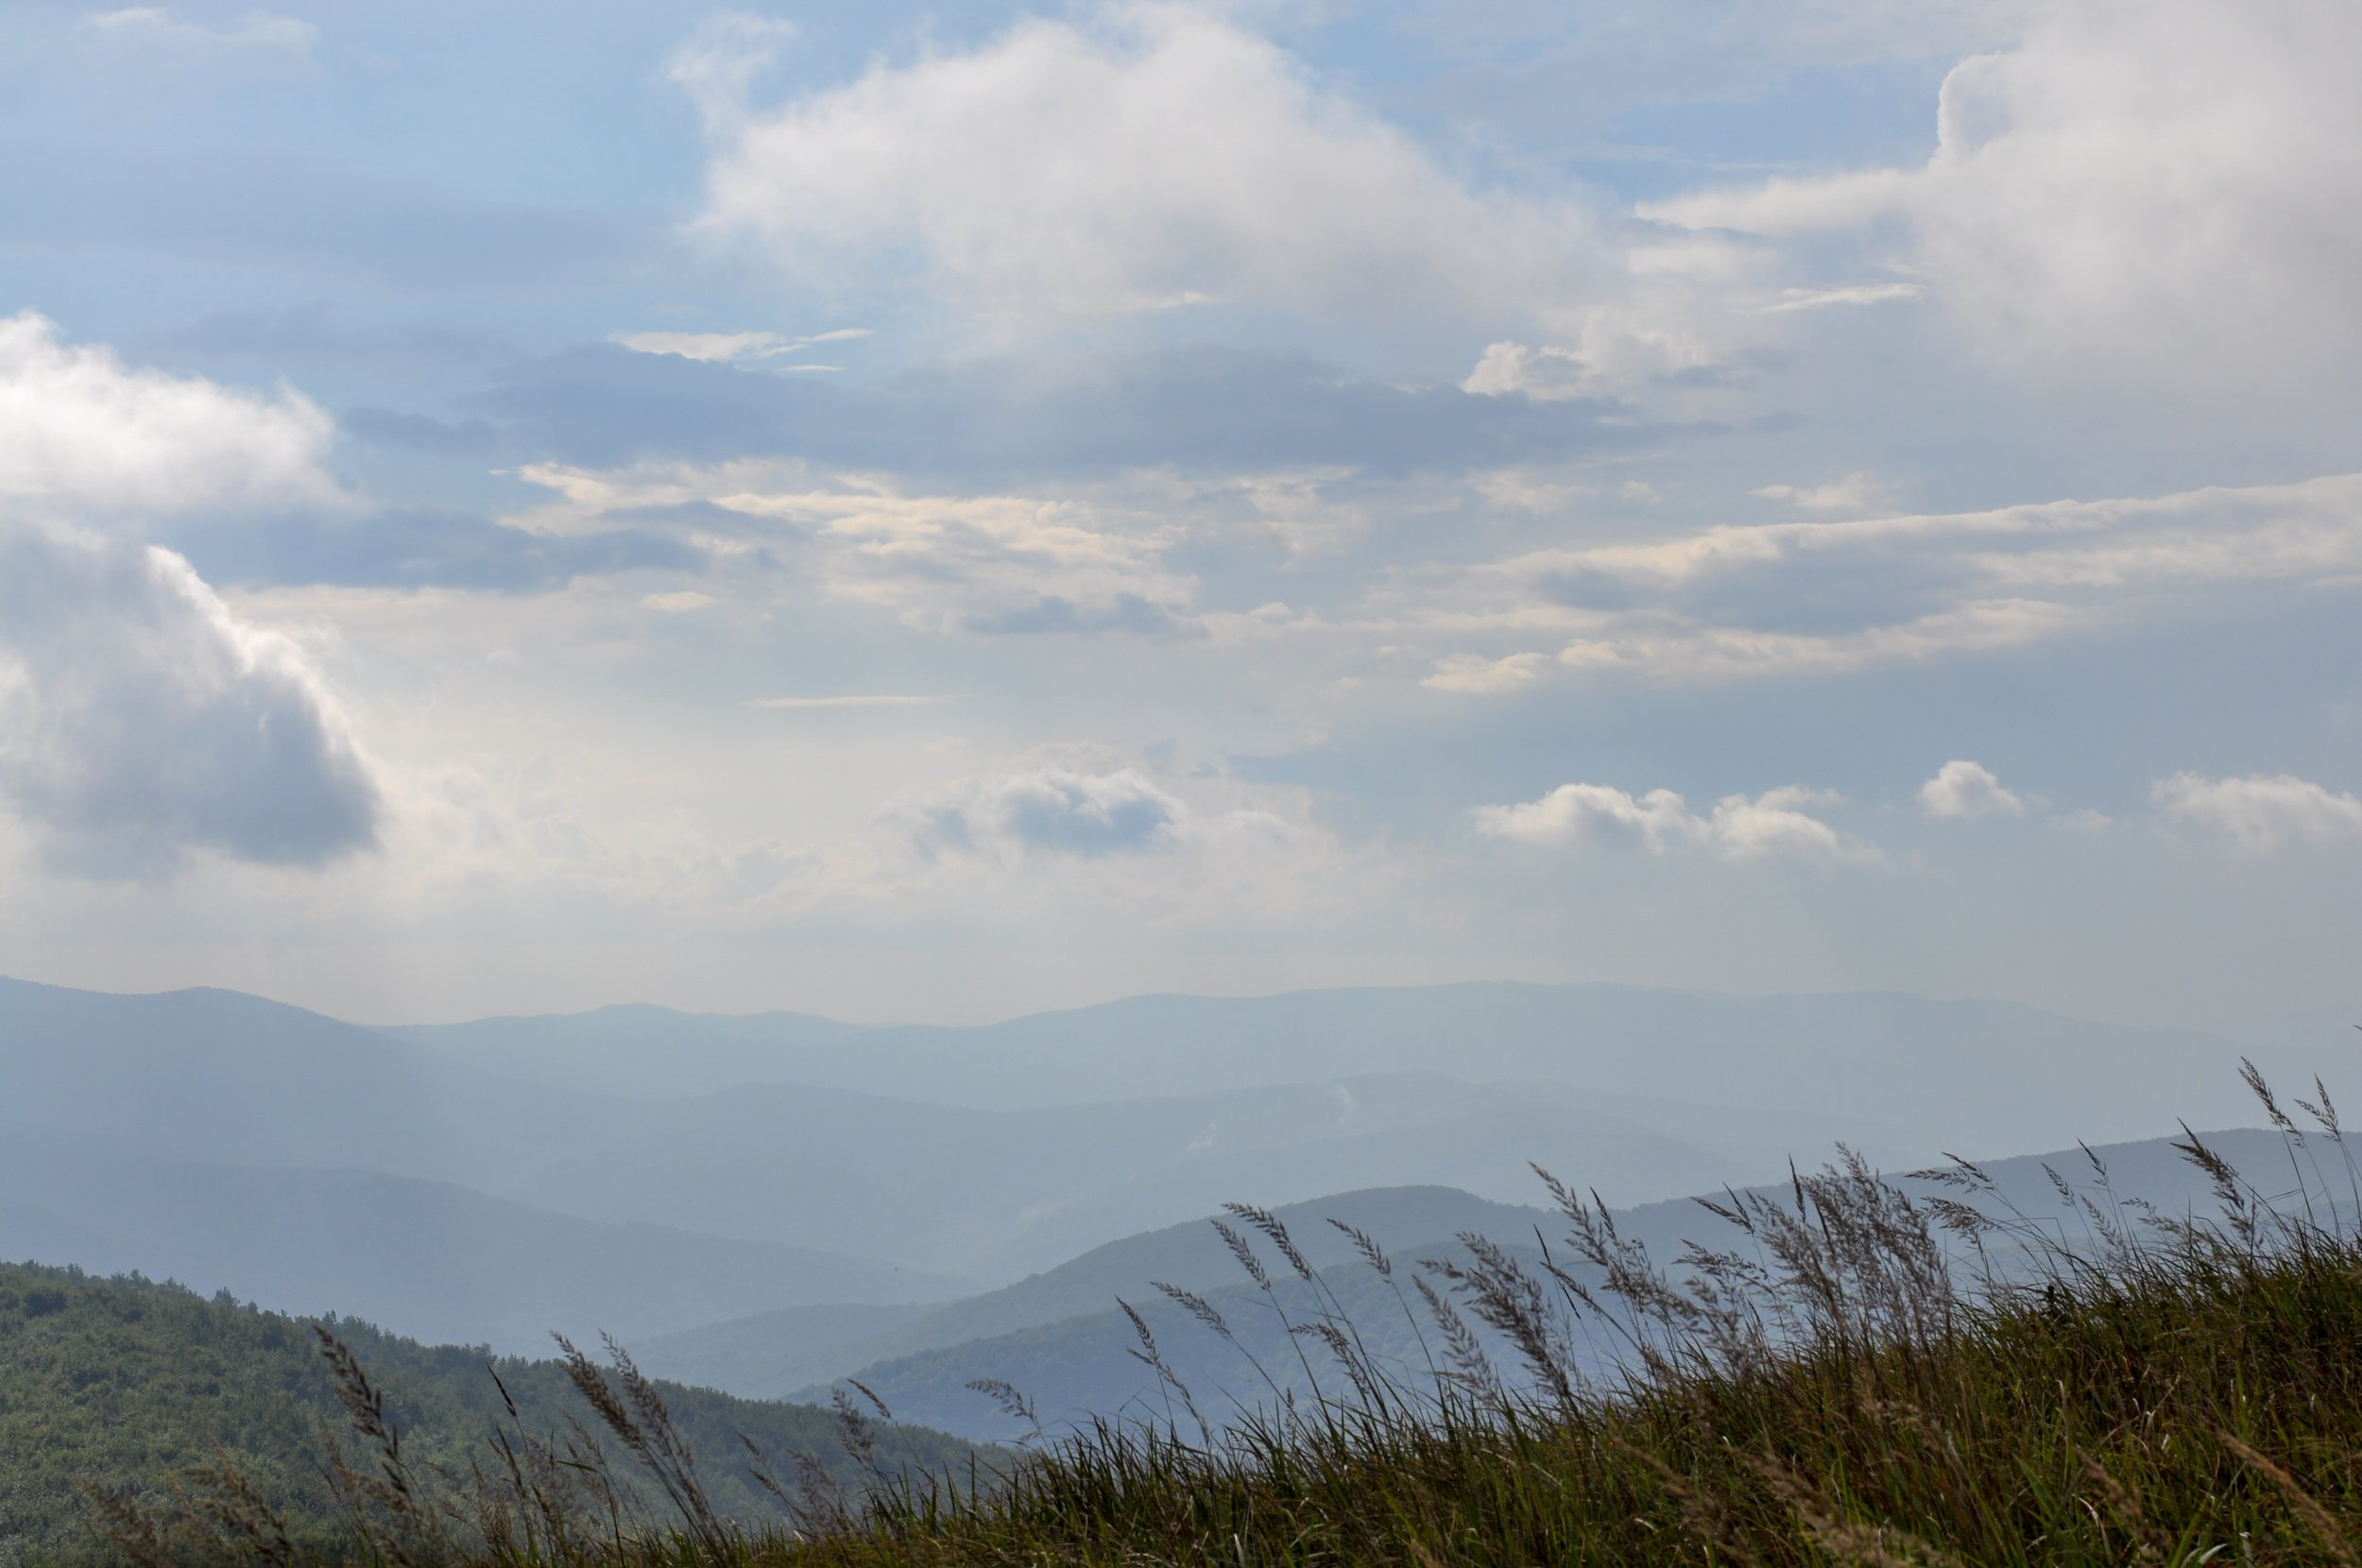 Views of mountains and valleys on the Tri-Border hike in the Bieszcady Mountains with grass in the forefront